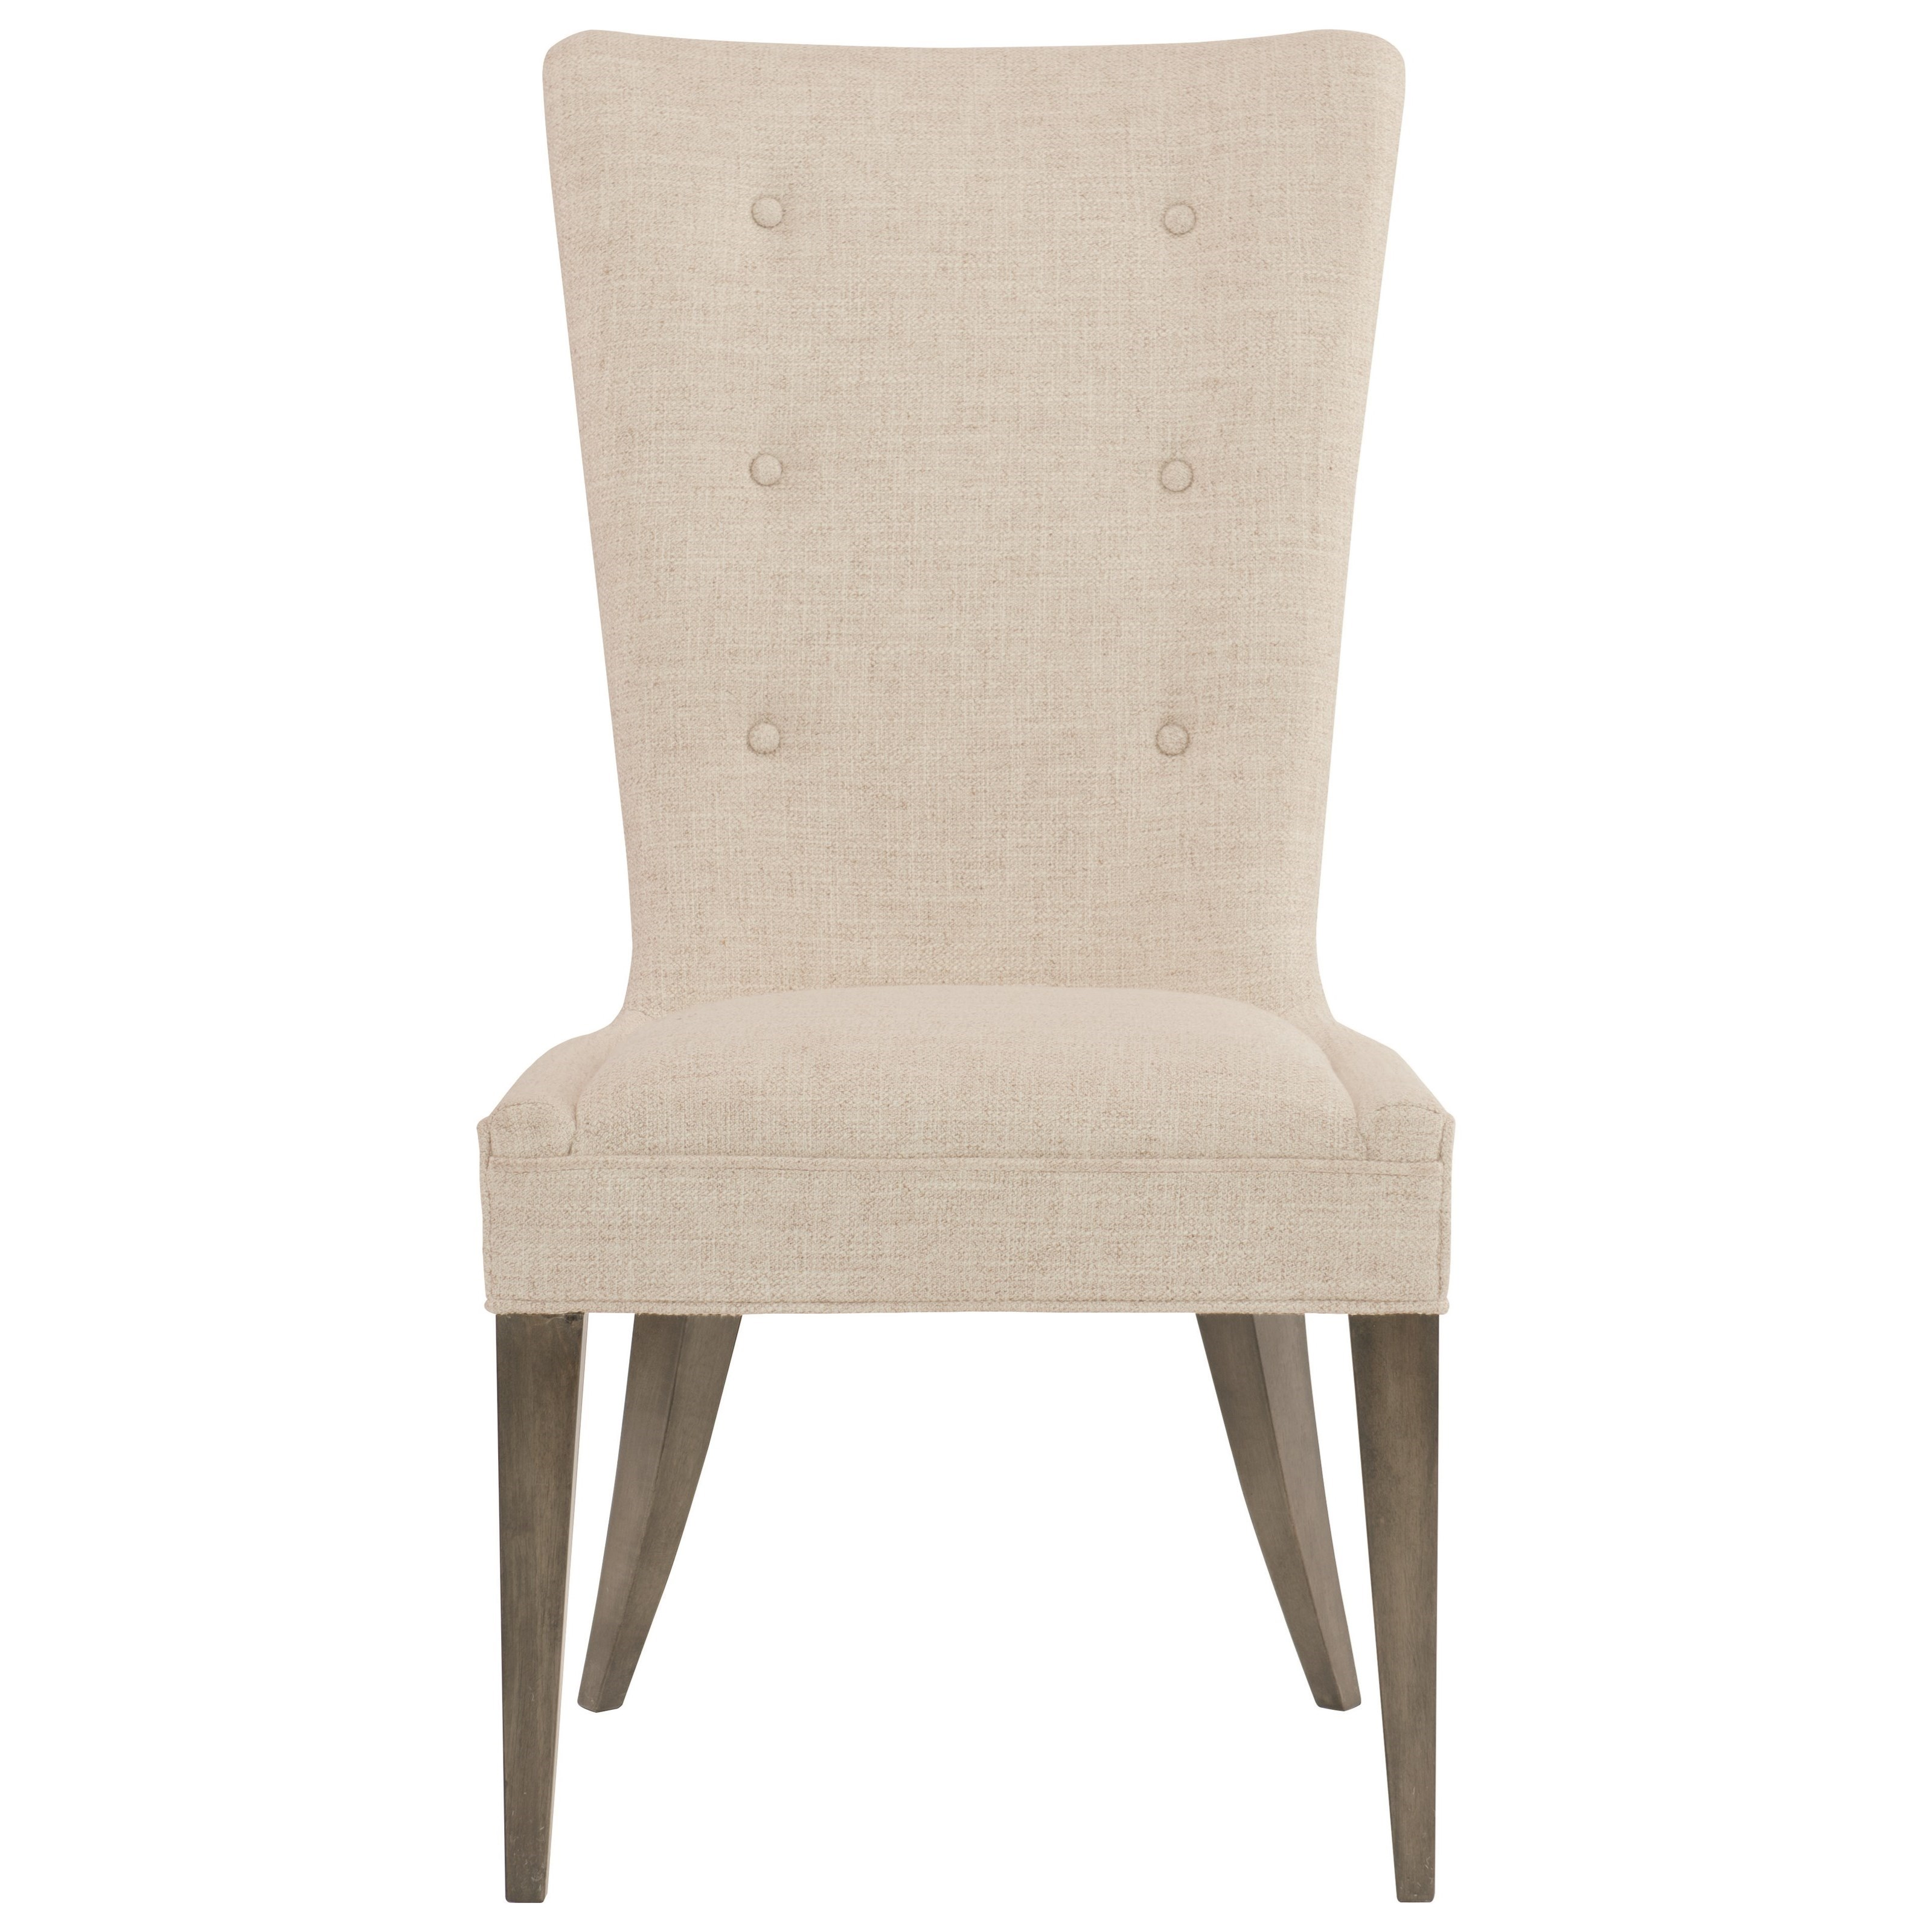 Profile Upholstered Side Chair by Bernhardt at Baer's Furniture